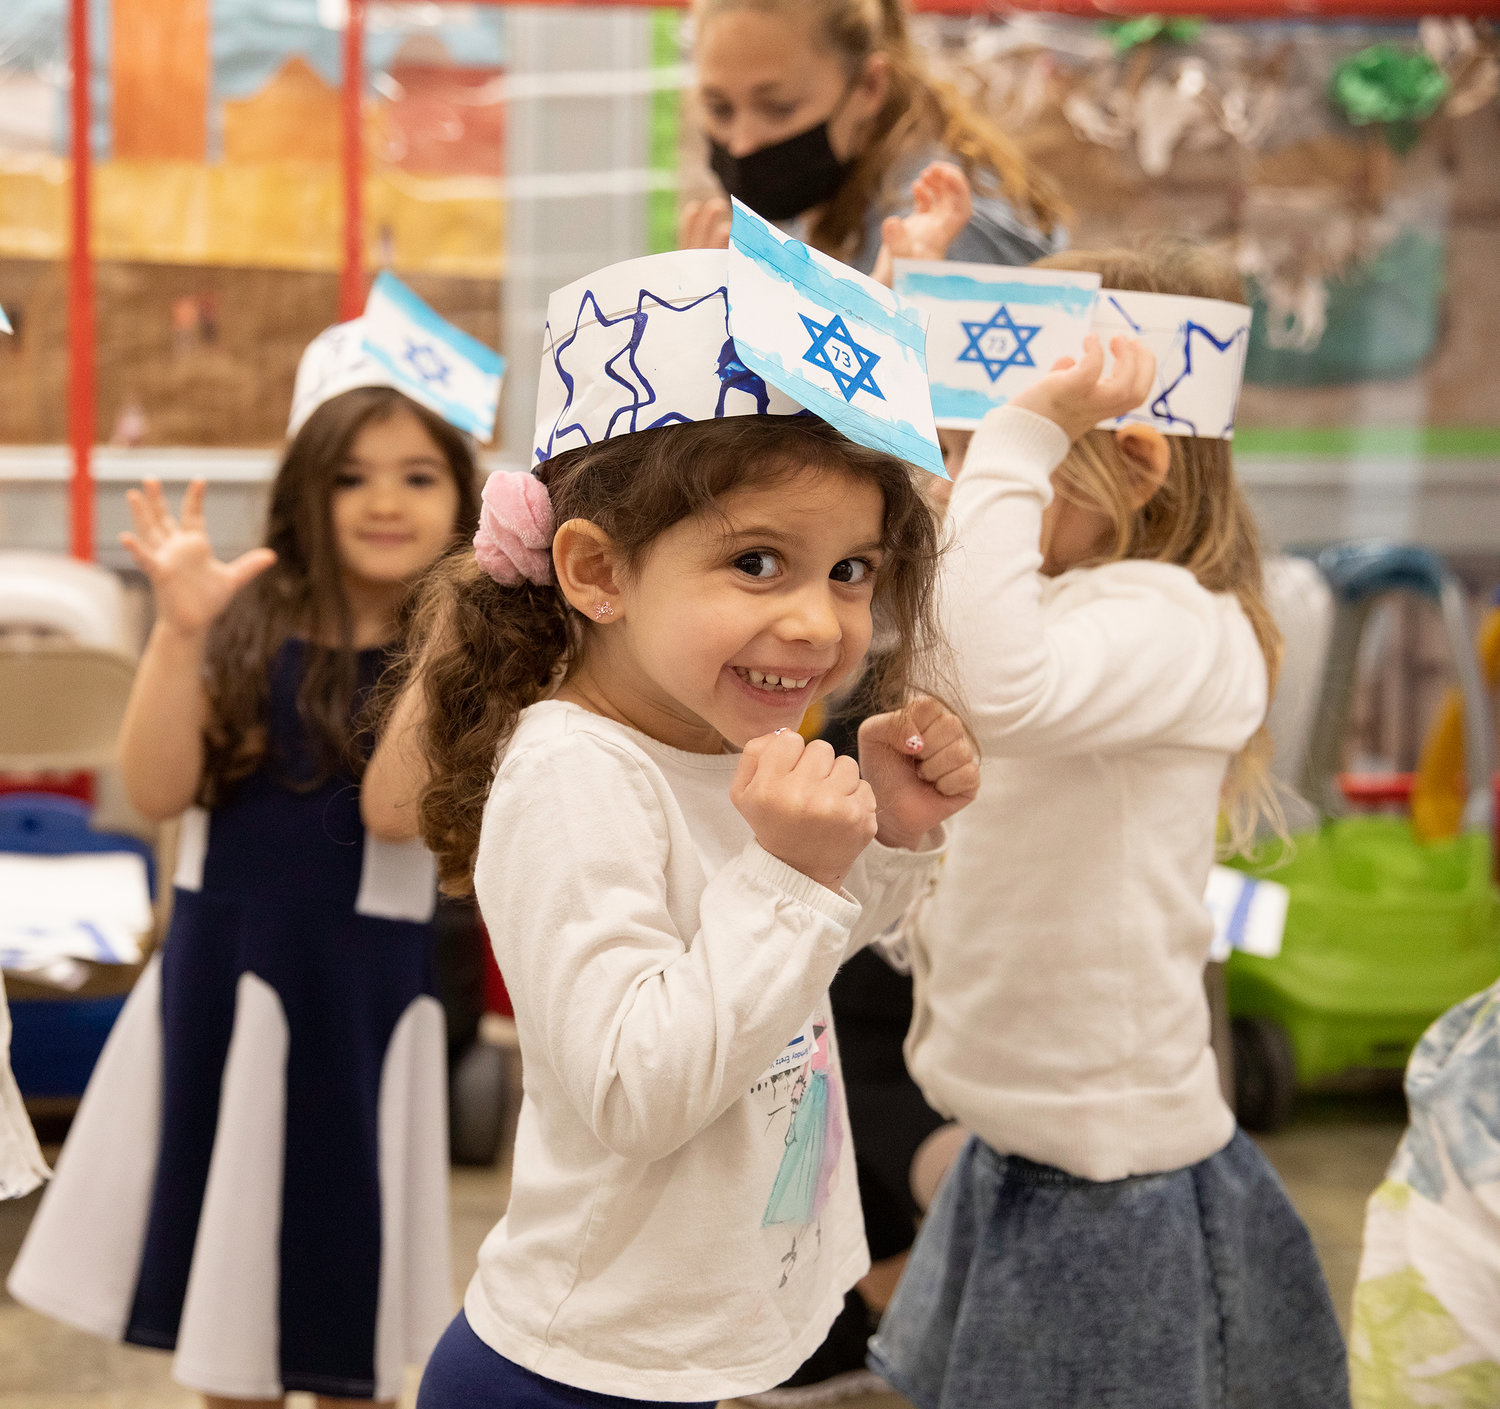 HAFTR Early Childhood student Mikaela Fligelman, of Woodmere, happily danced as part of the school's Israel Independence Day celebration.